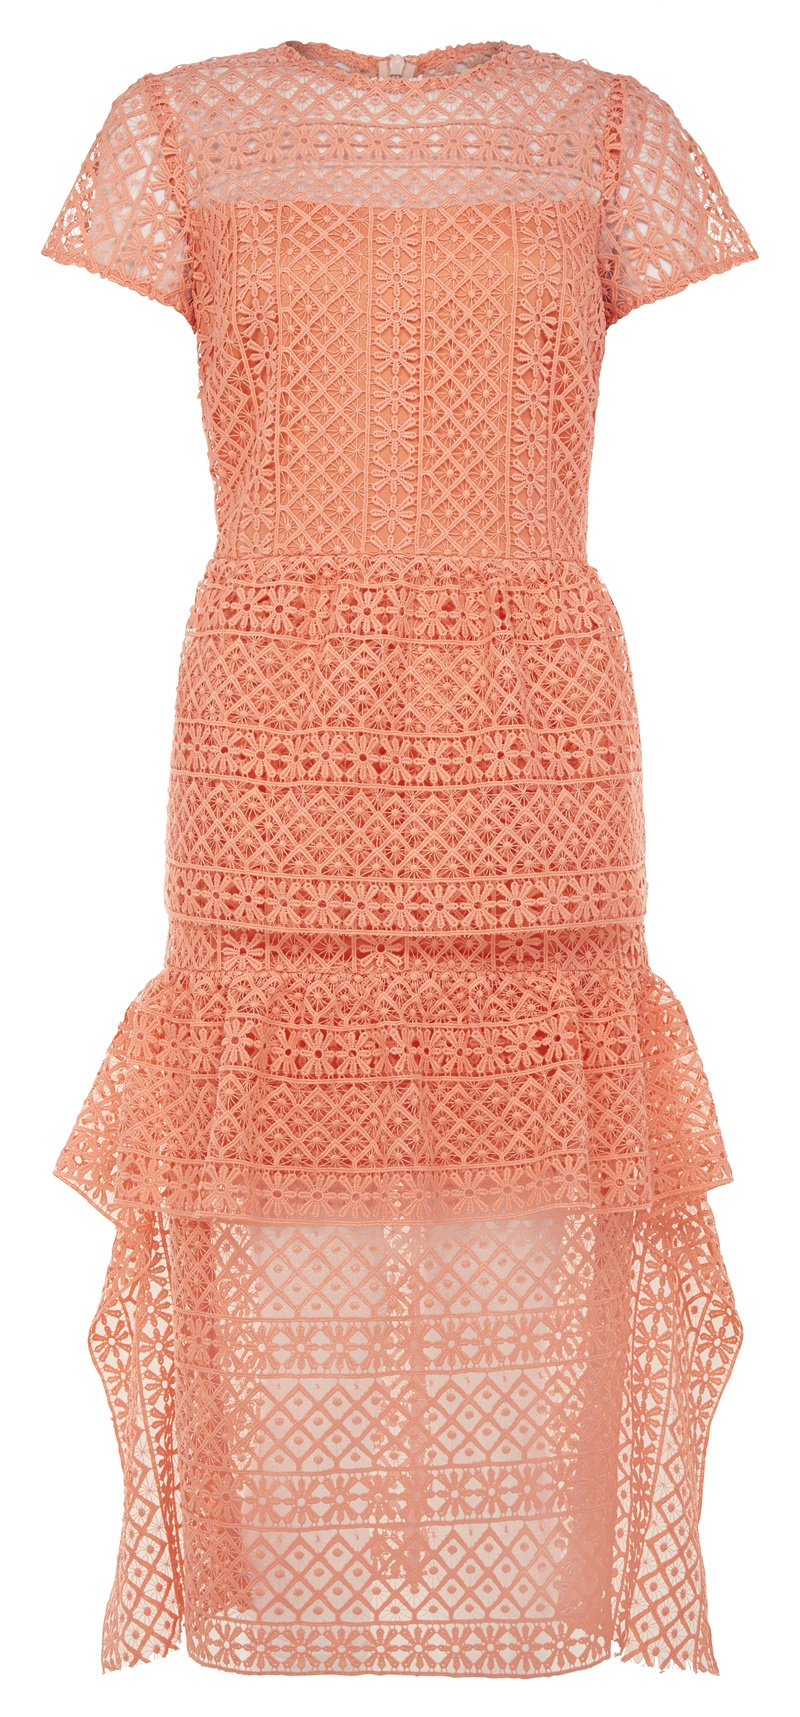 River island 39 s new full length frocks are ideal for spring Wedding guest dress river island